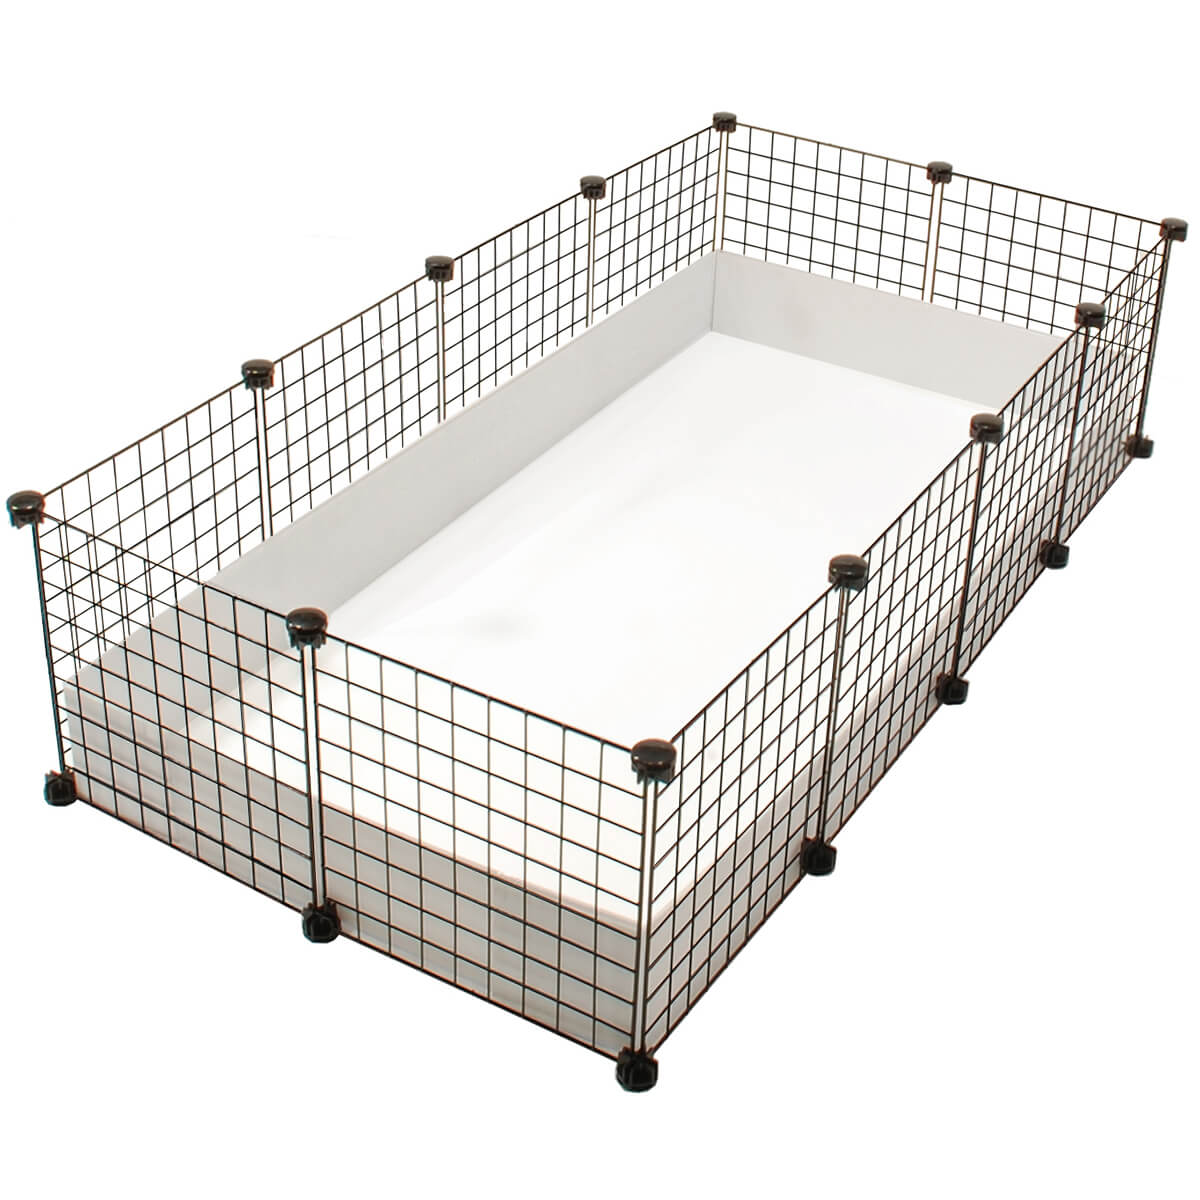 Large 2x4 grids cage standard cages cagetopia for Guinea pig cages for two